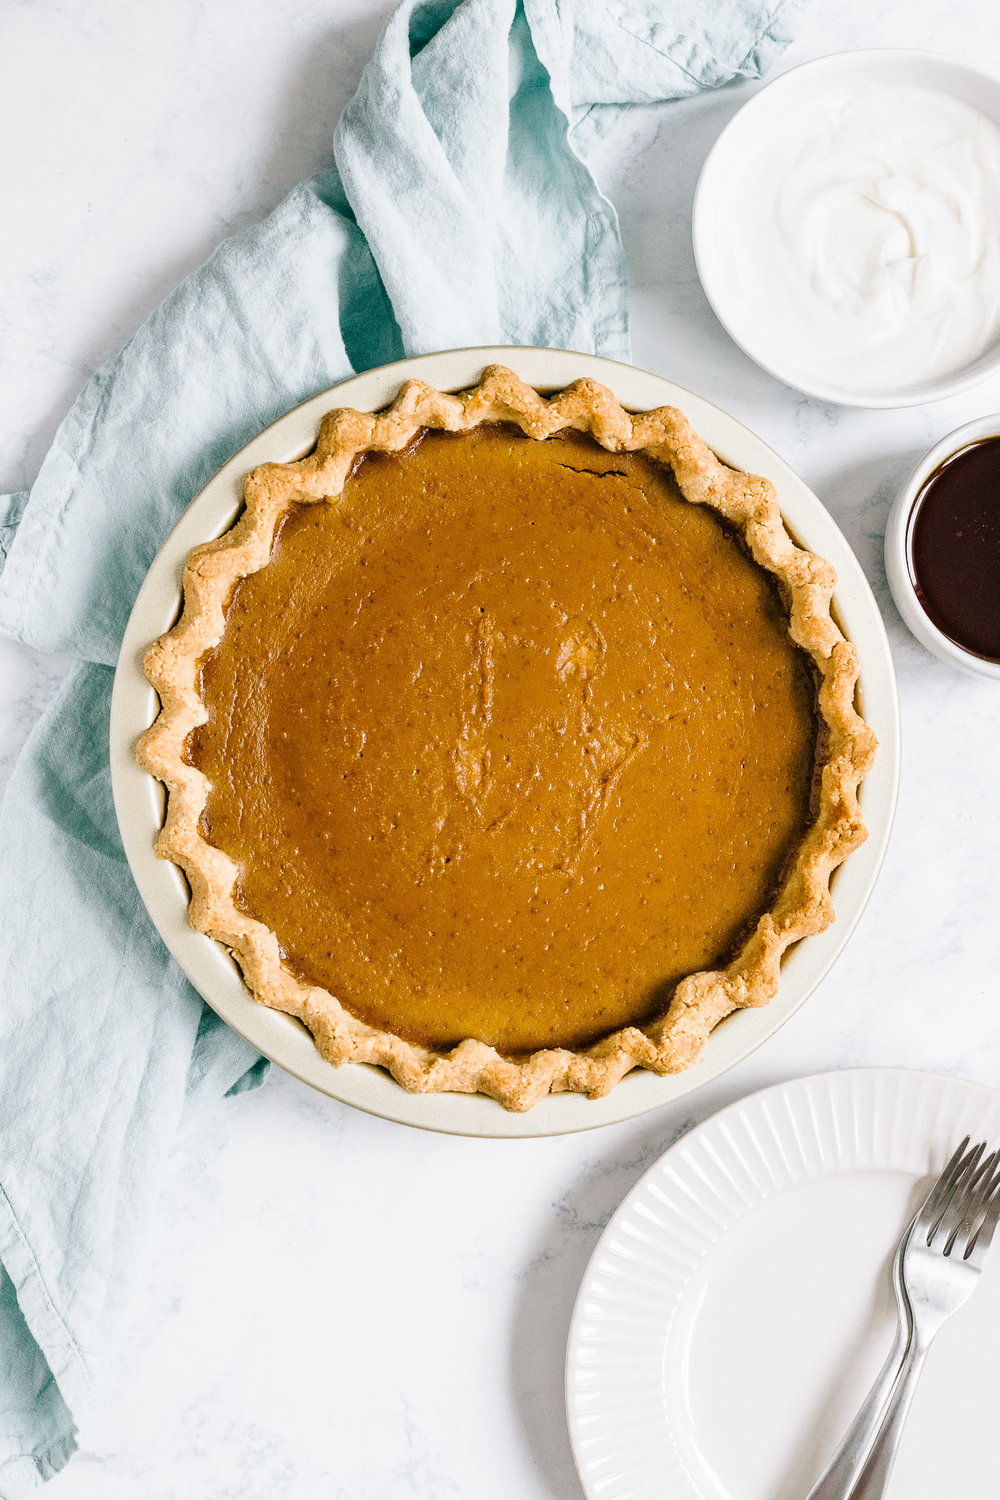 Healthy pumpkin pie with almond flour crust